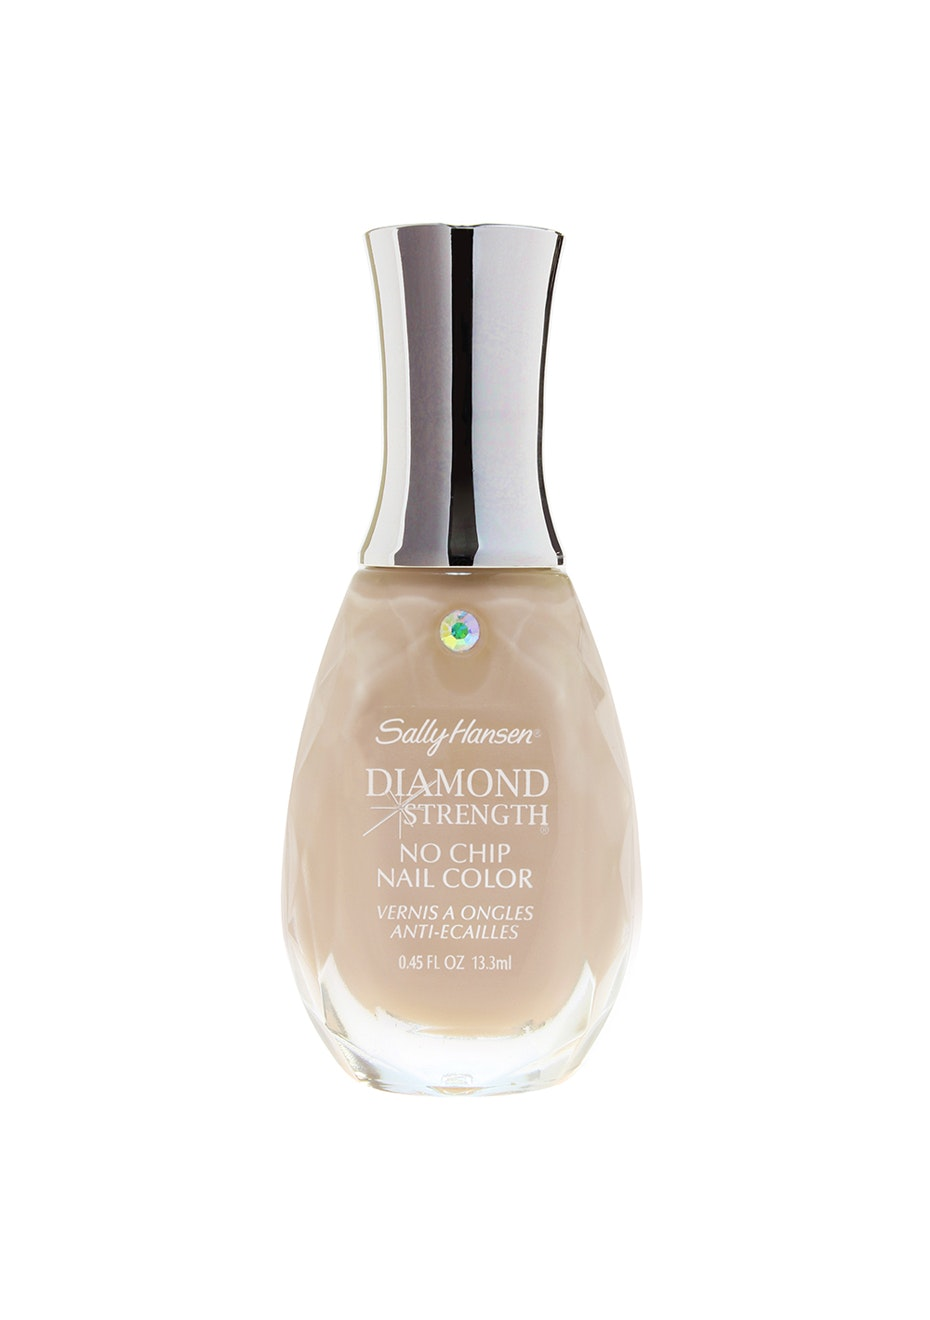 Sally Hansen Diamond Strength Nail Color #508 DUCHESSE LACE